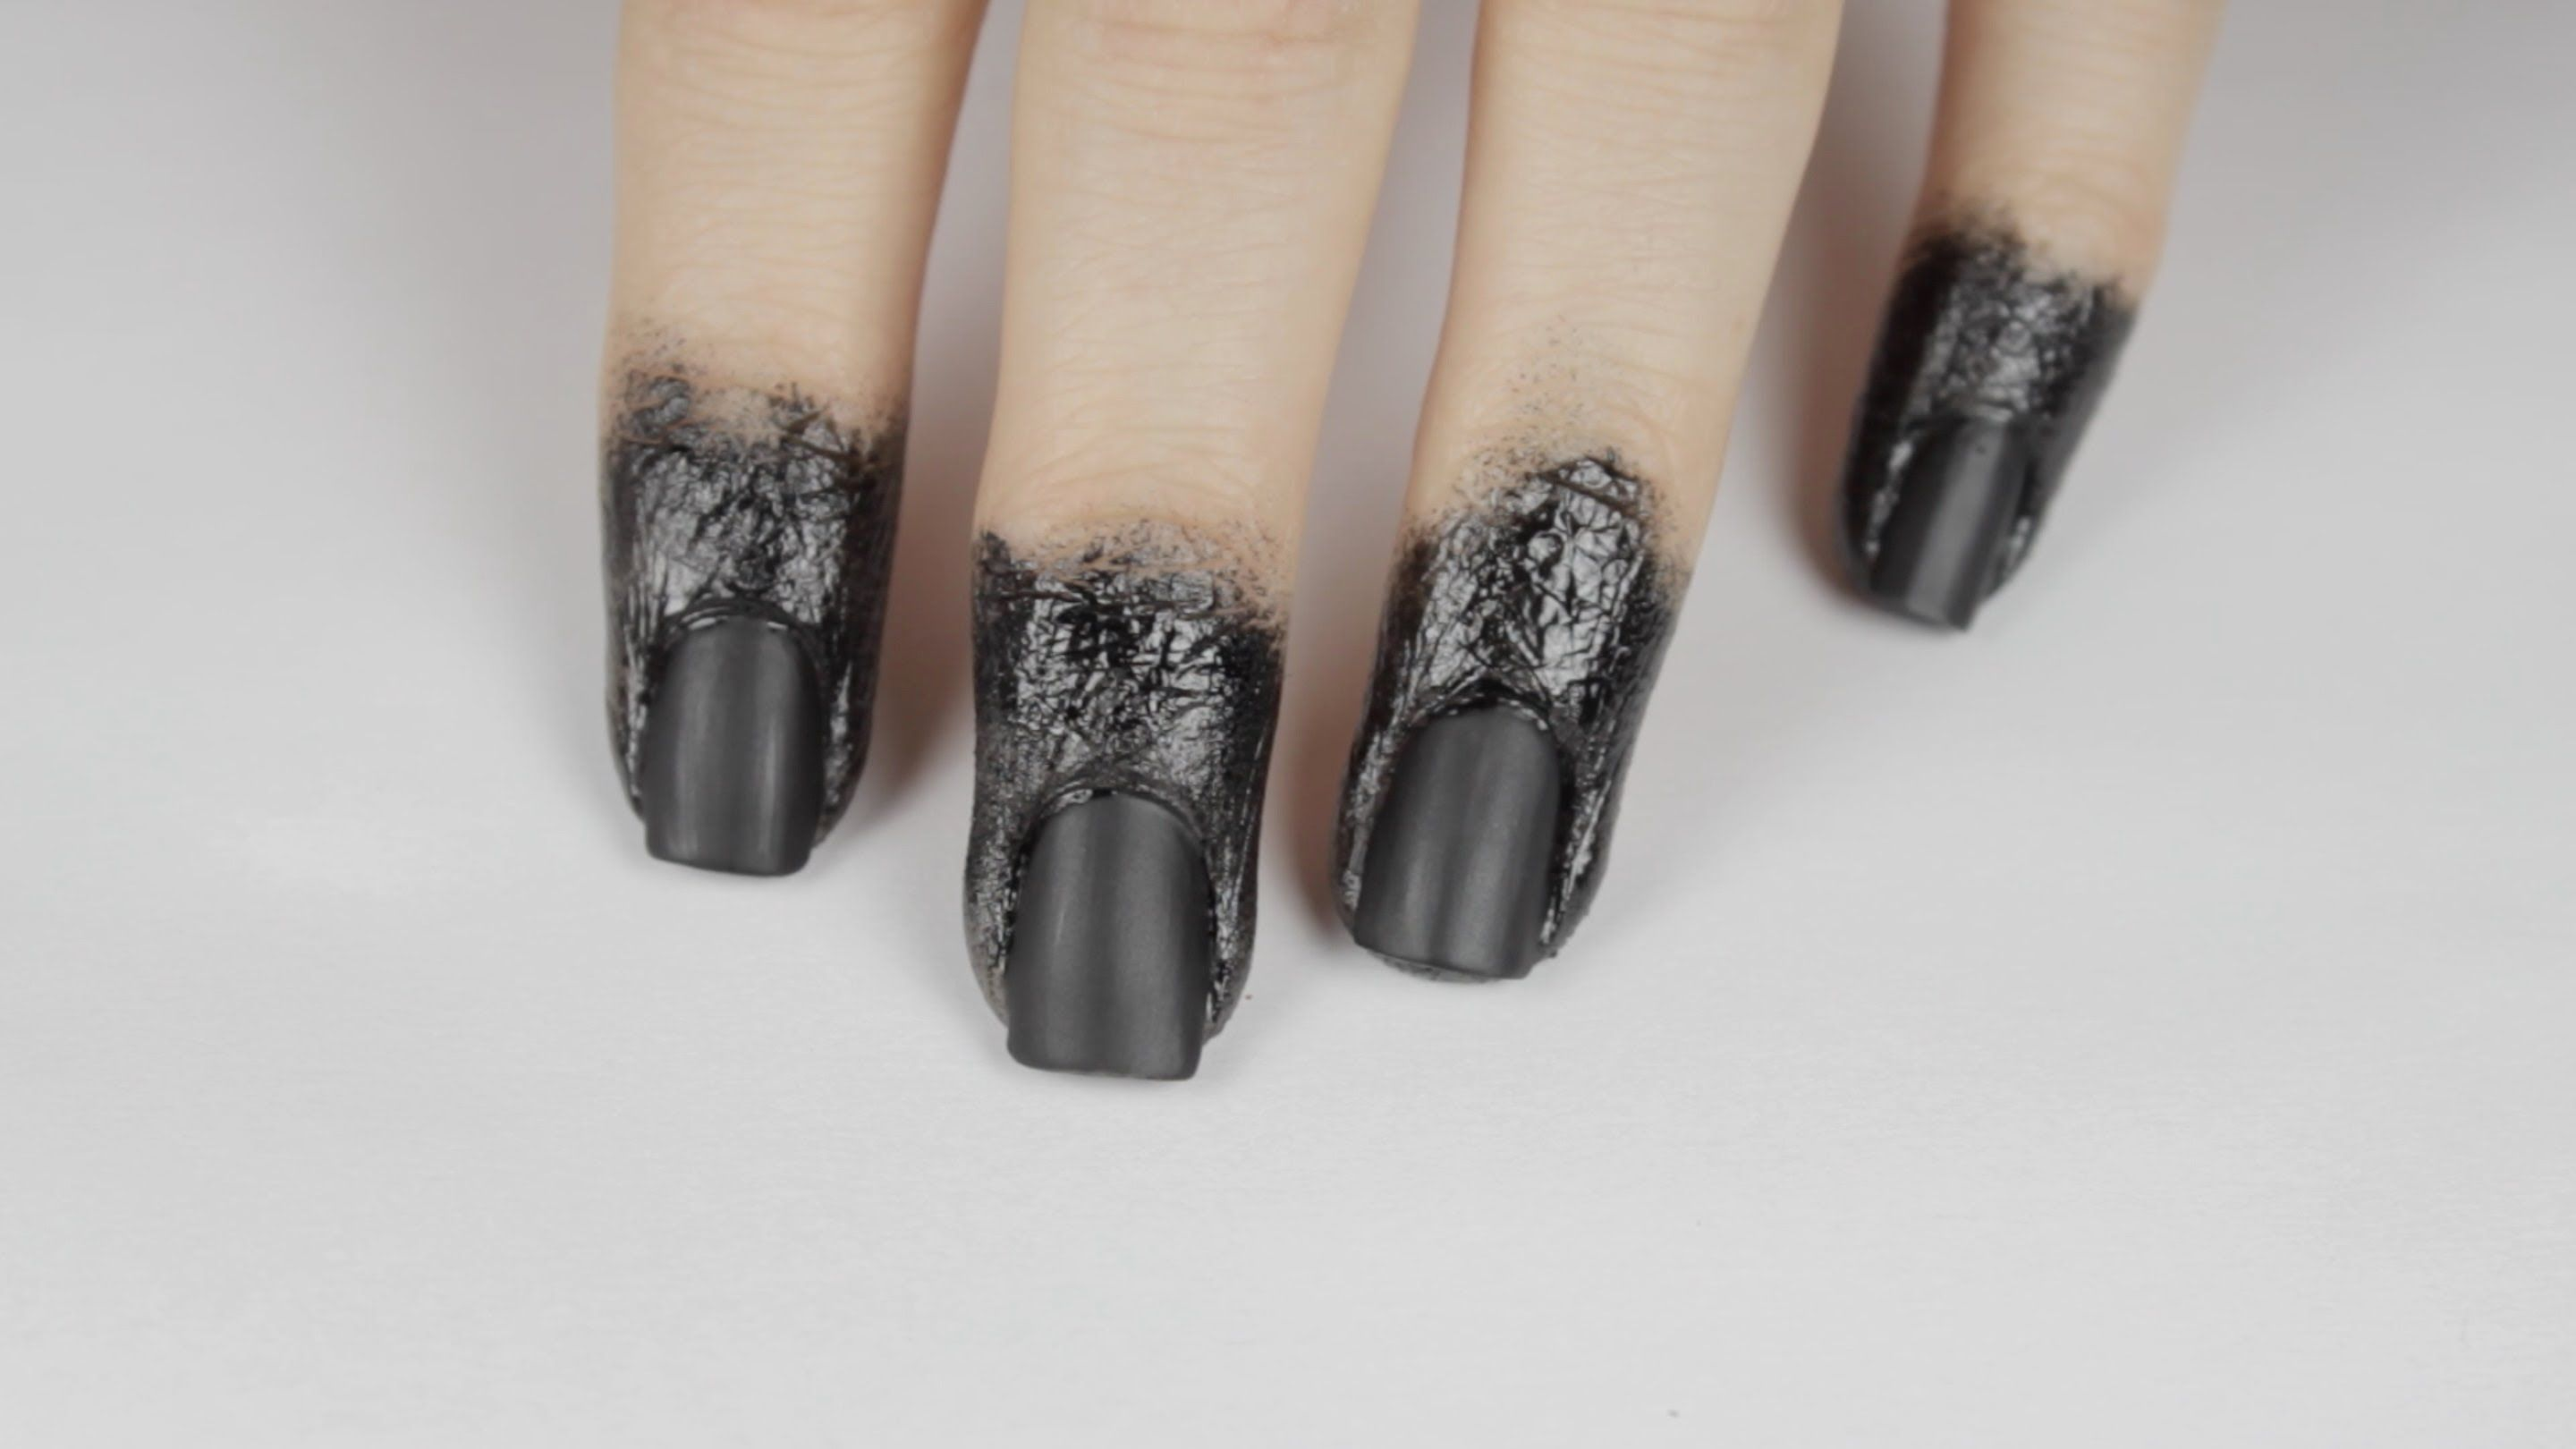 Lorde inspired nail tutorial - Lorde S Grammy Black Nails And Dipped Fingertips By Cutepolish